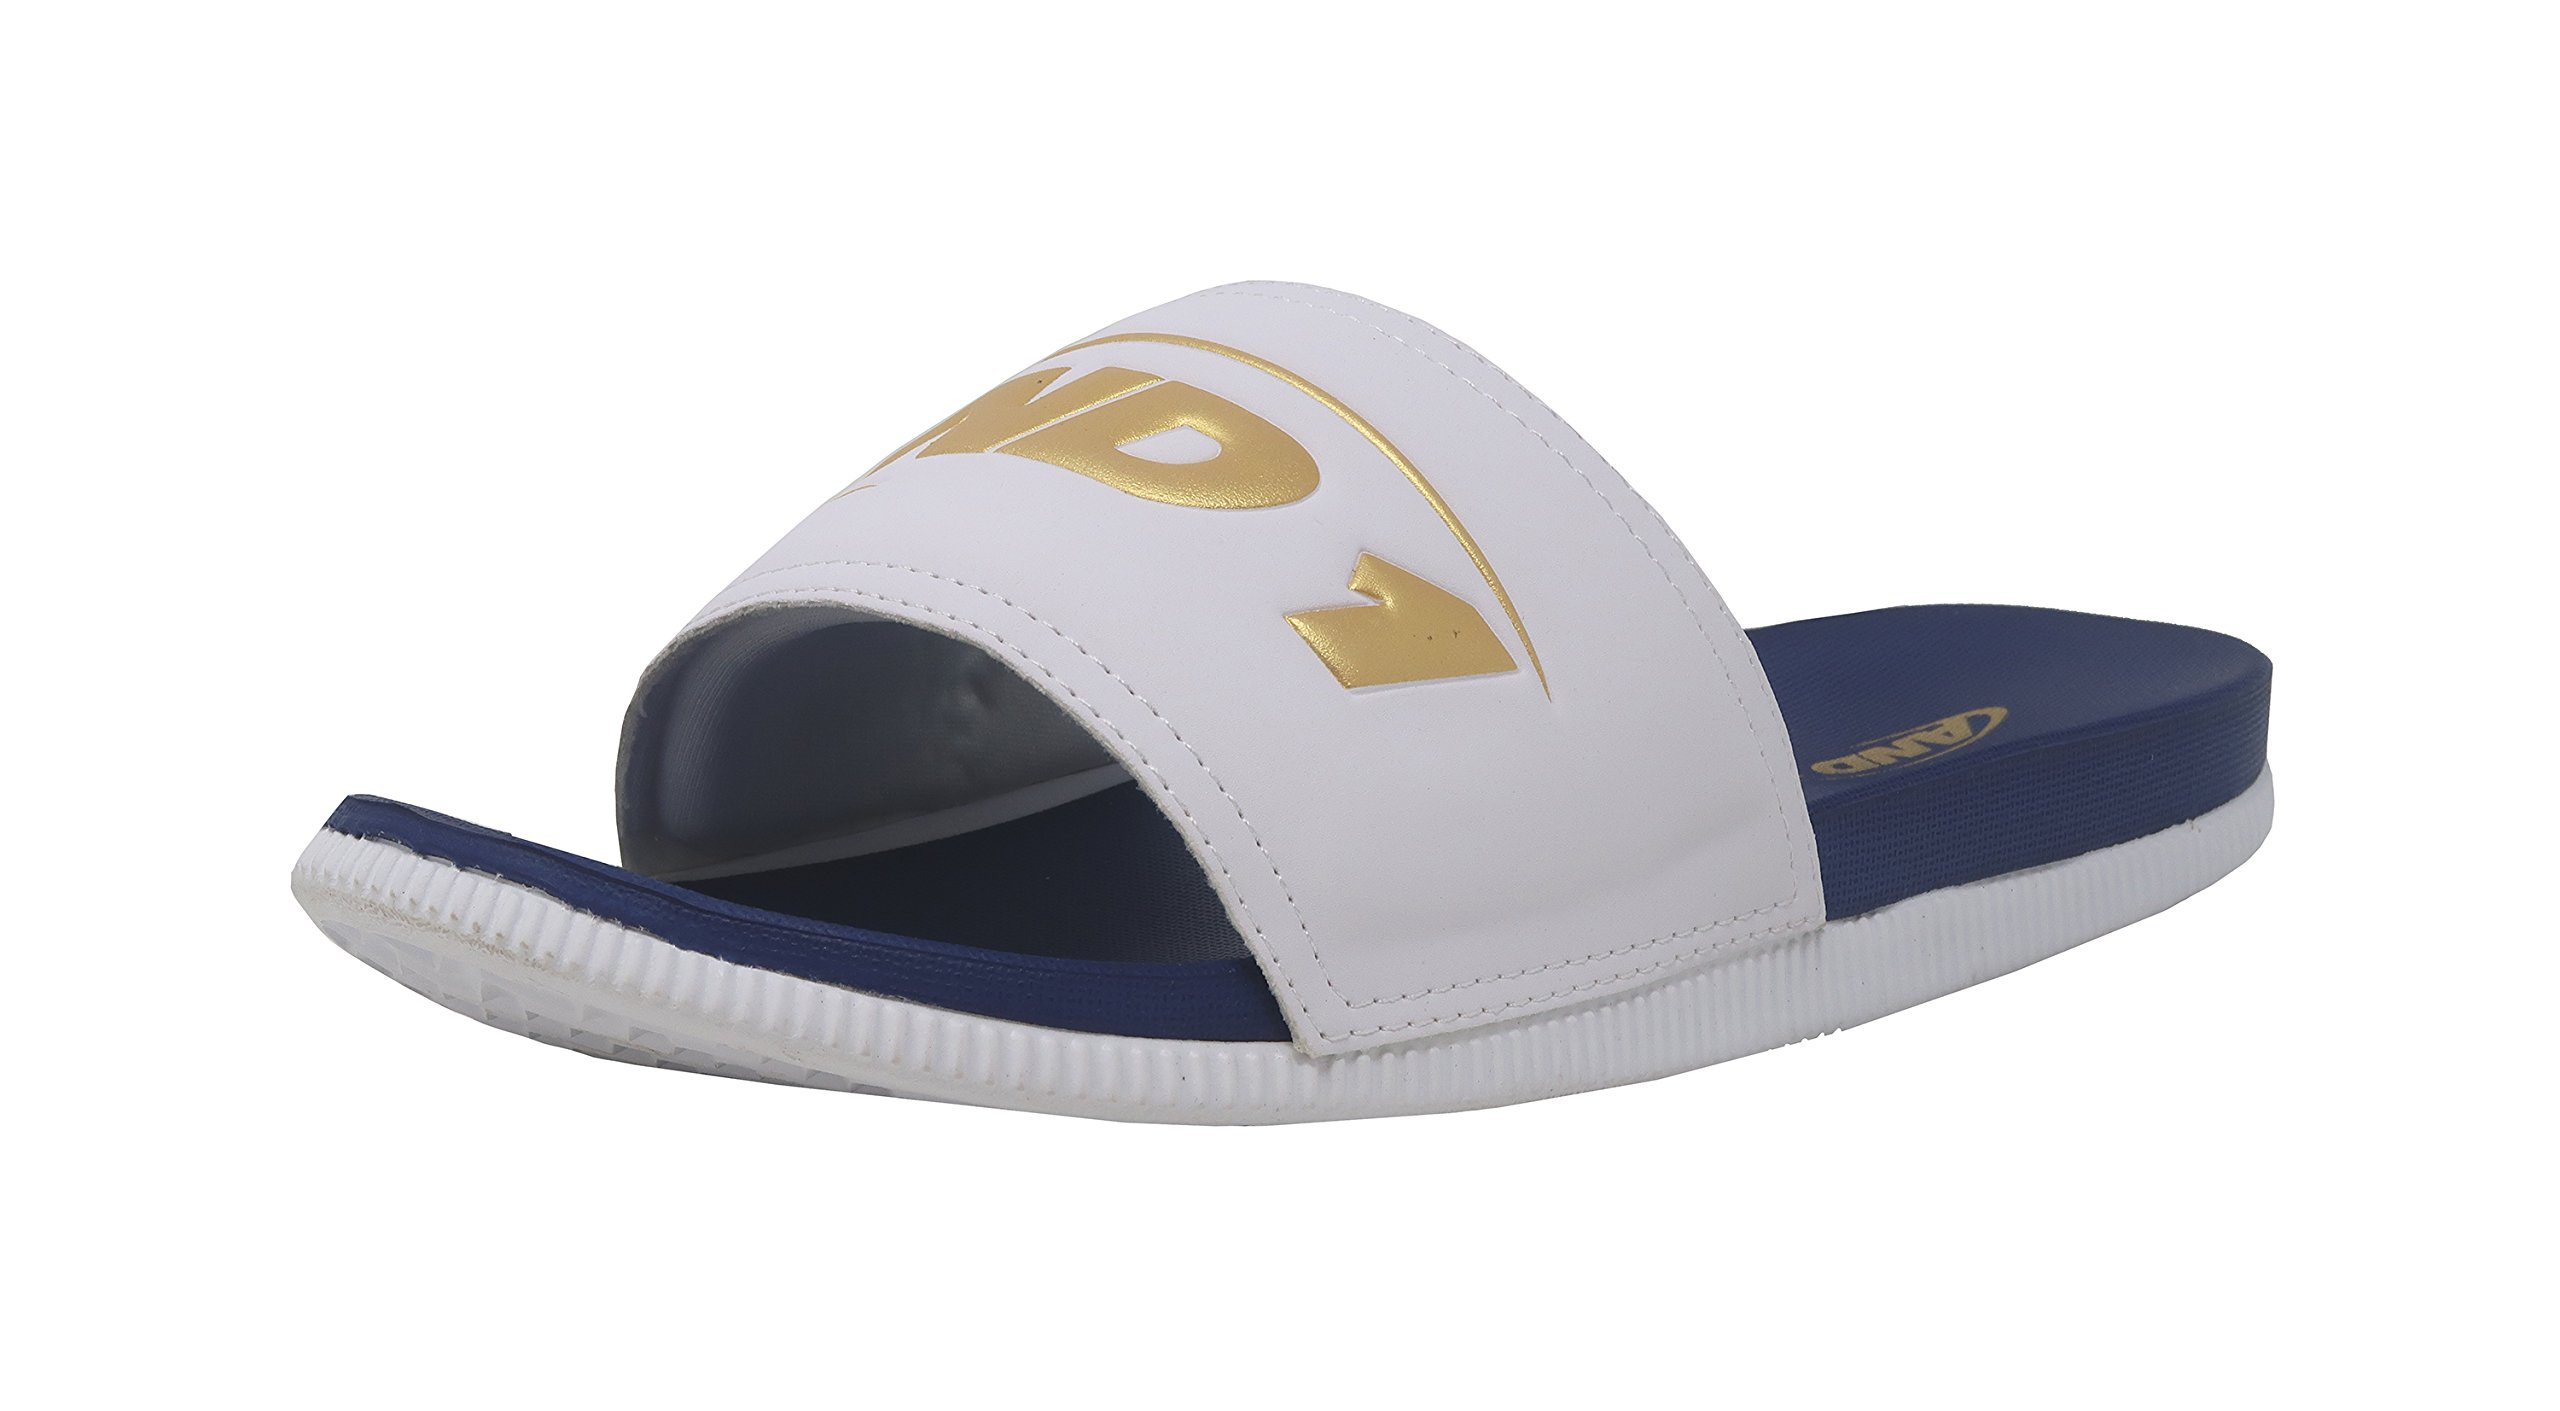 085bae76eef49 AND1 Men's Haven Basketball Shoe, White/Pale Gold/True Navy, 12 M US